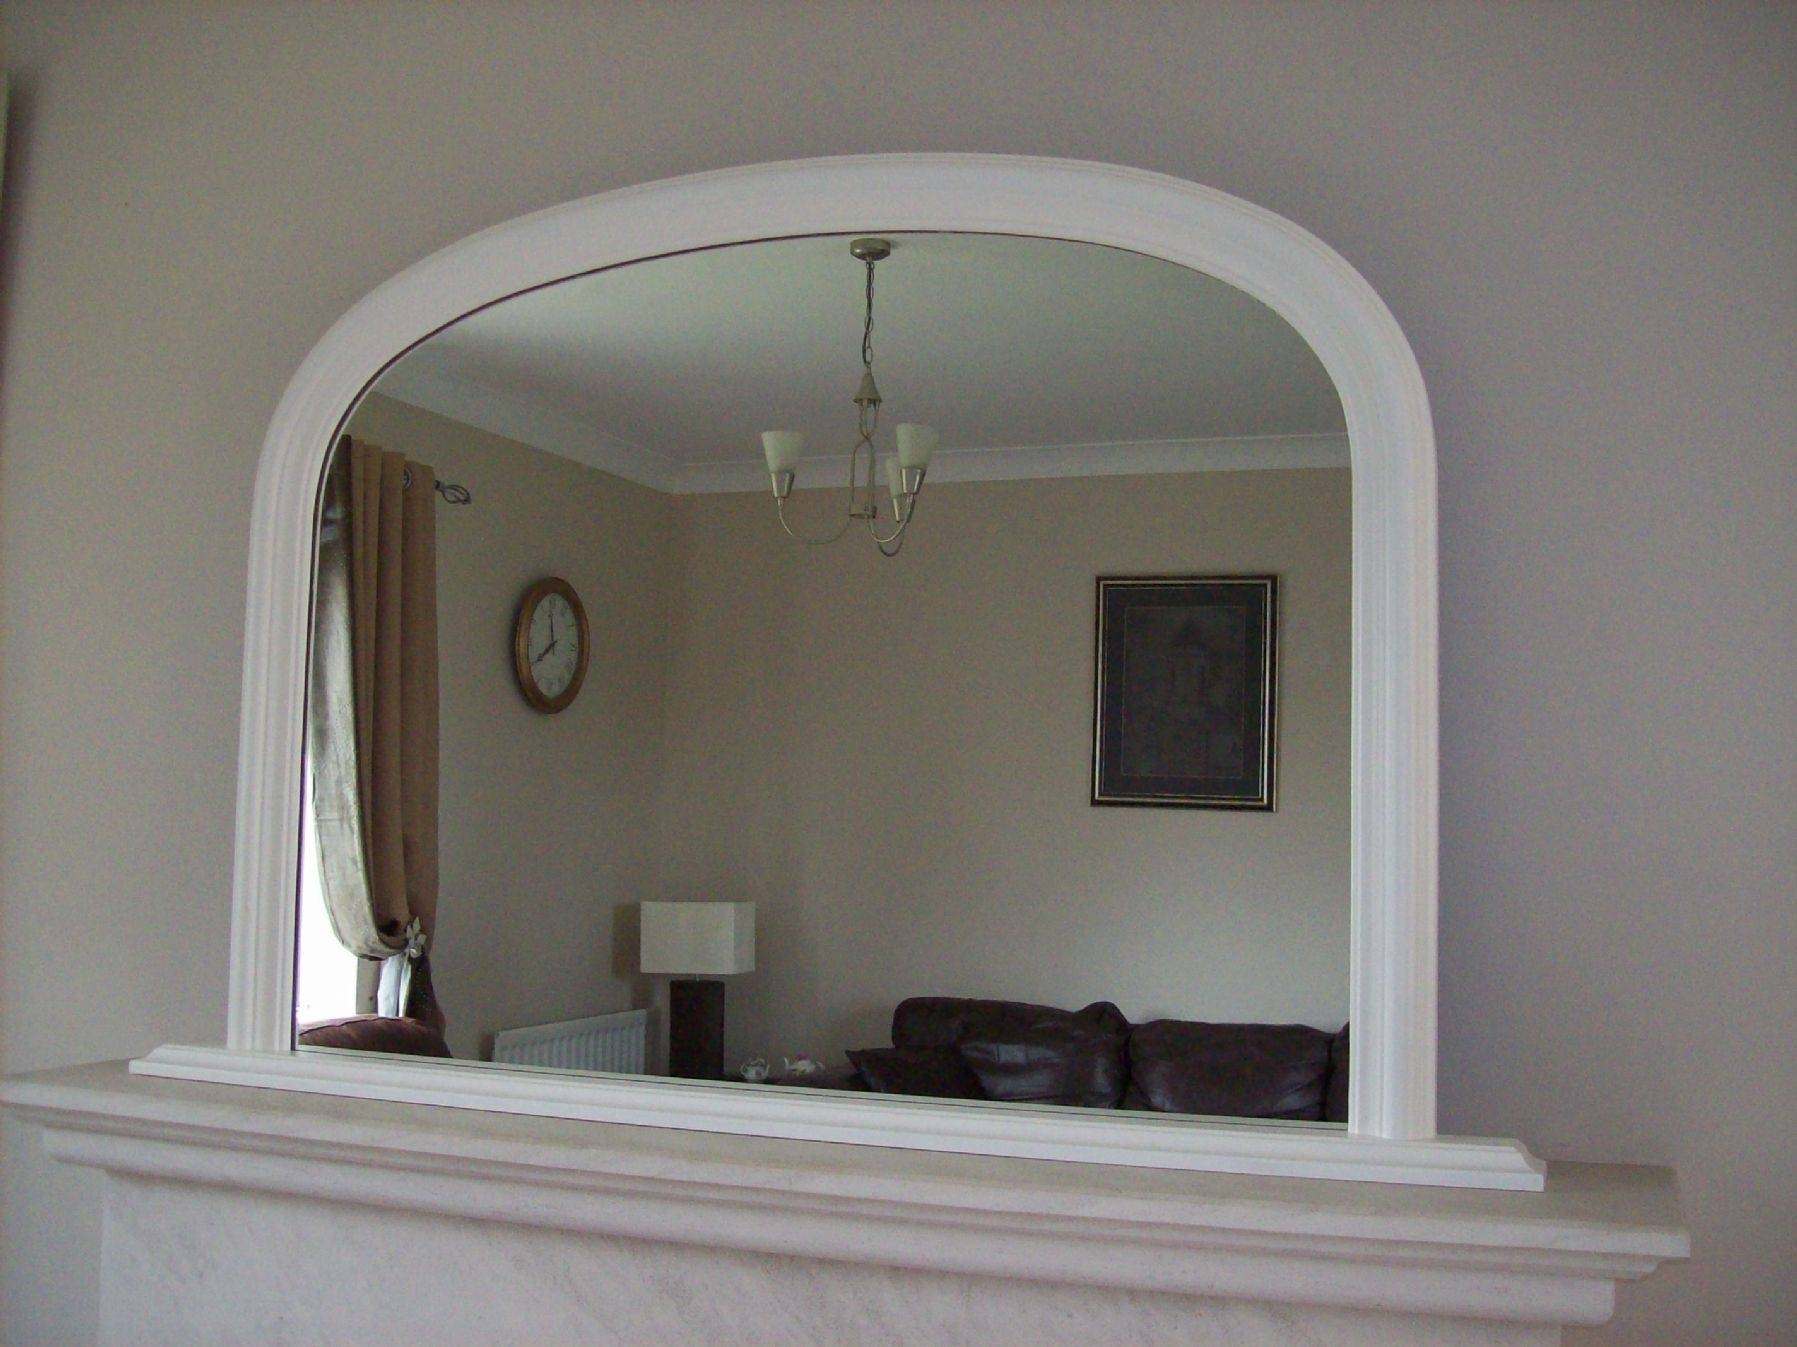 Arched Overmantle Mirror intended for Over Mantel Mirrors (Image 2 of 15)